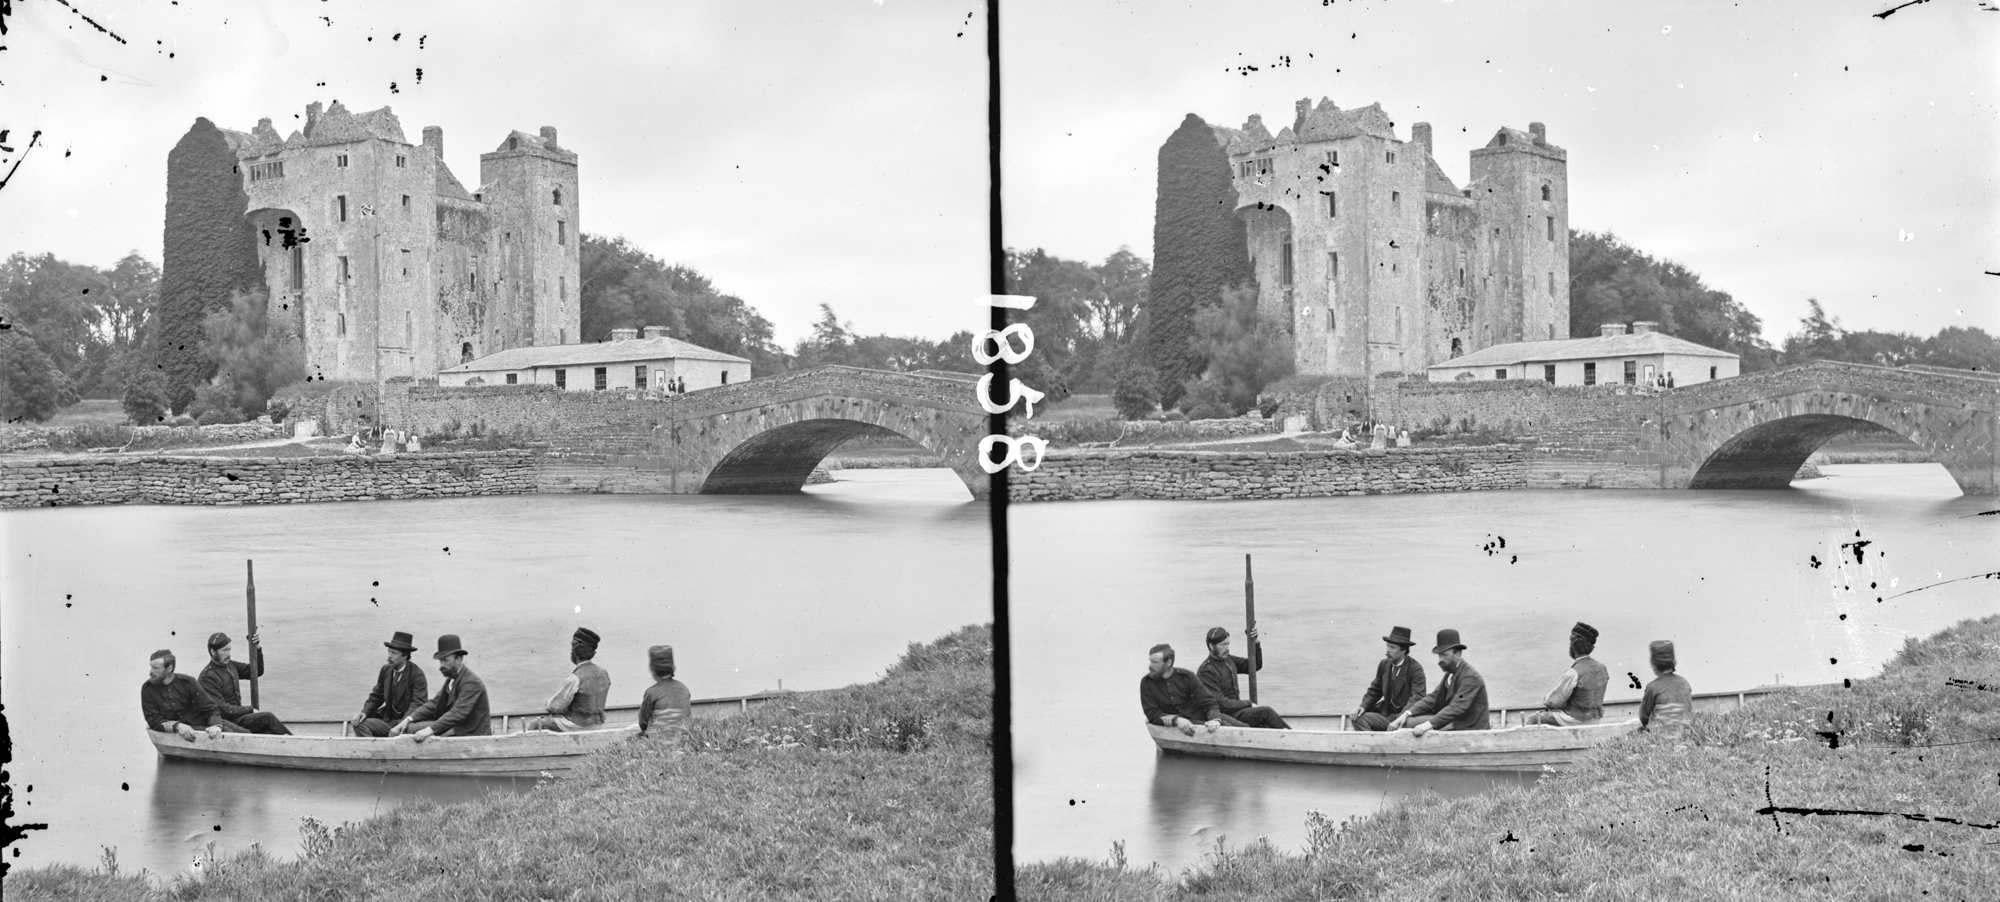 Castle and bridge, row-boat with six people, in foreground, Bunratty, Clare